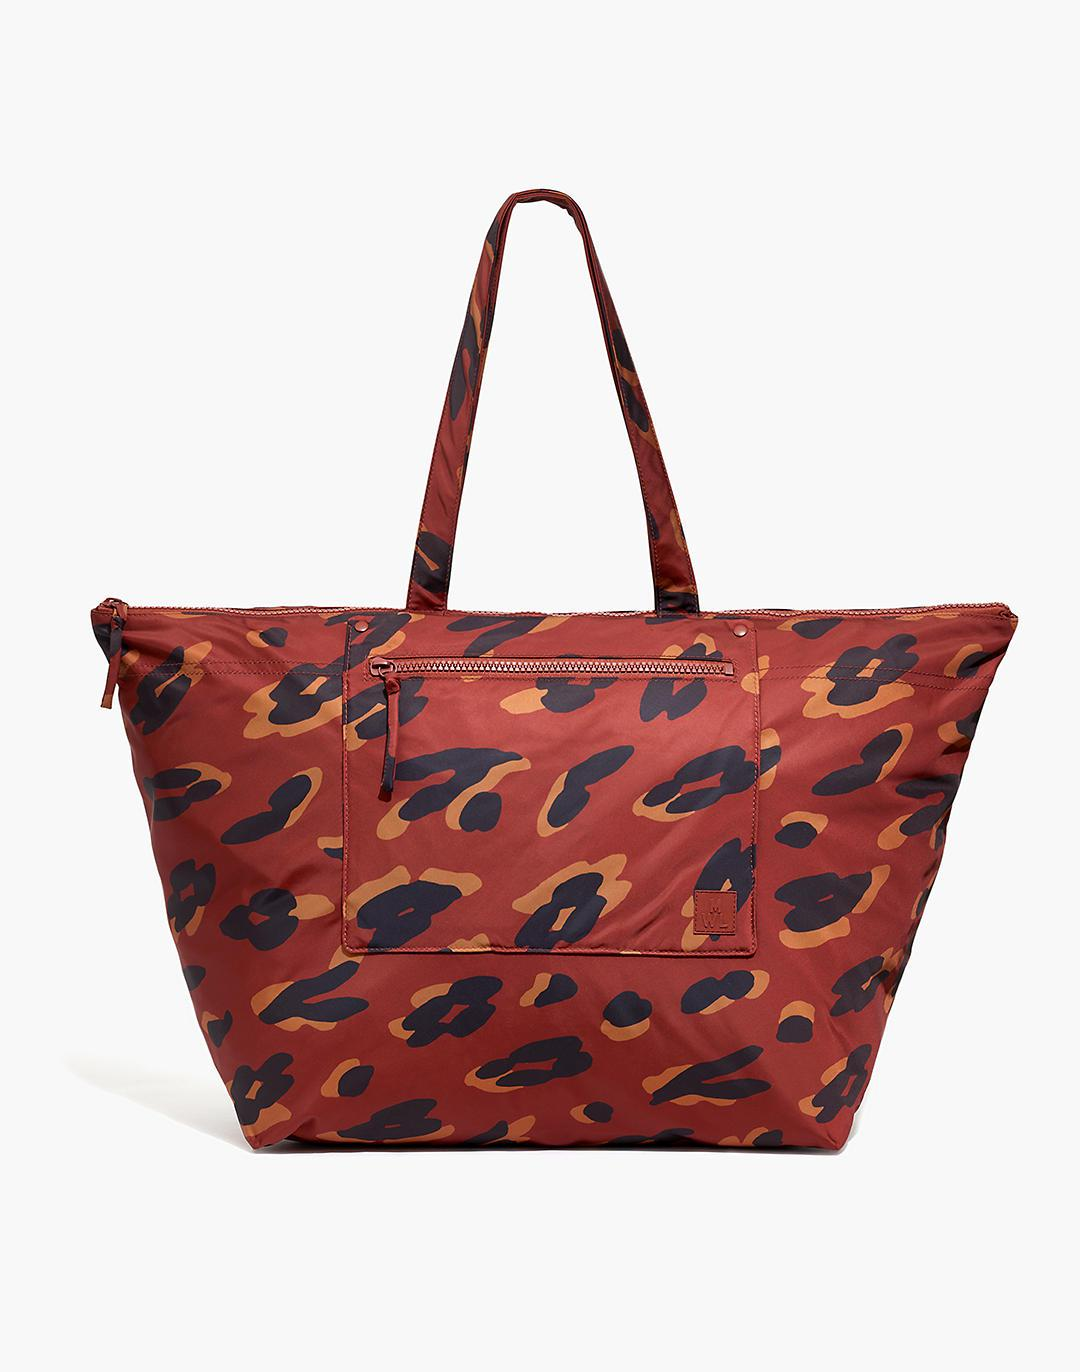 The (Re)sourced Weekender Bag in Painted Leopard